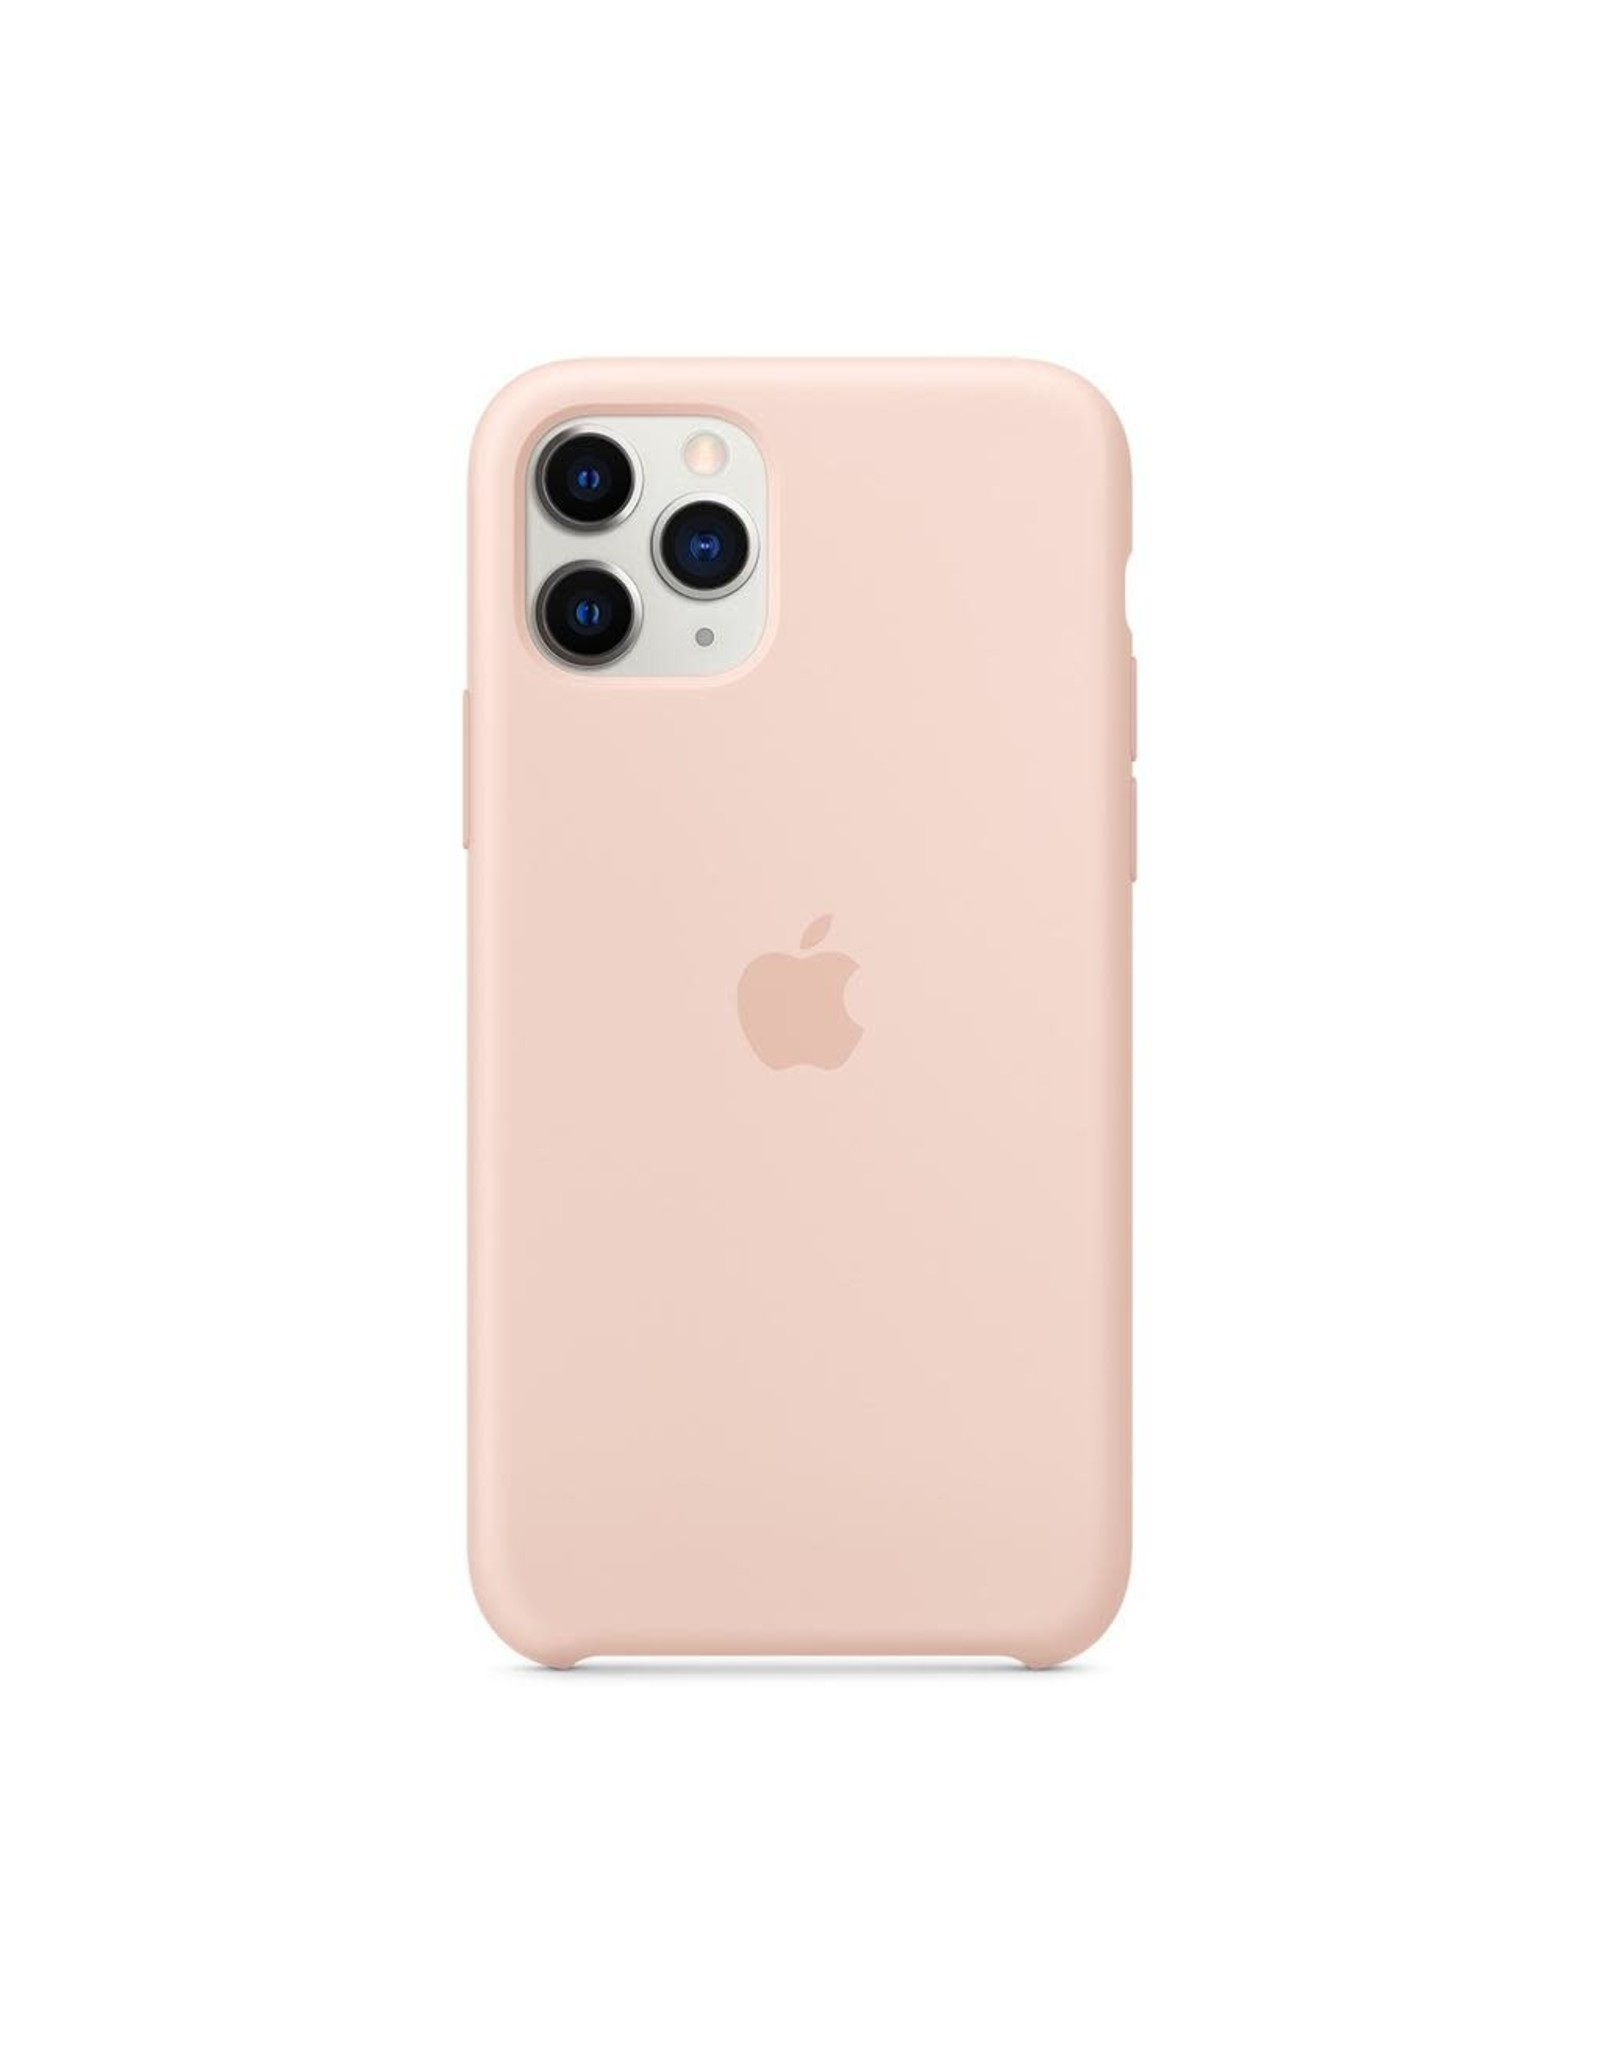 Apple Apple iPhone 11 Pro Silicone Case - PINK SAND